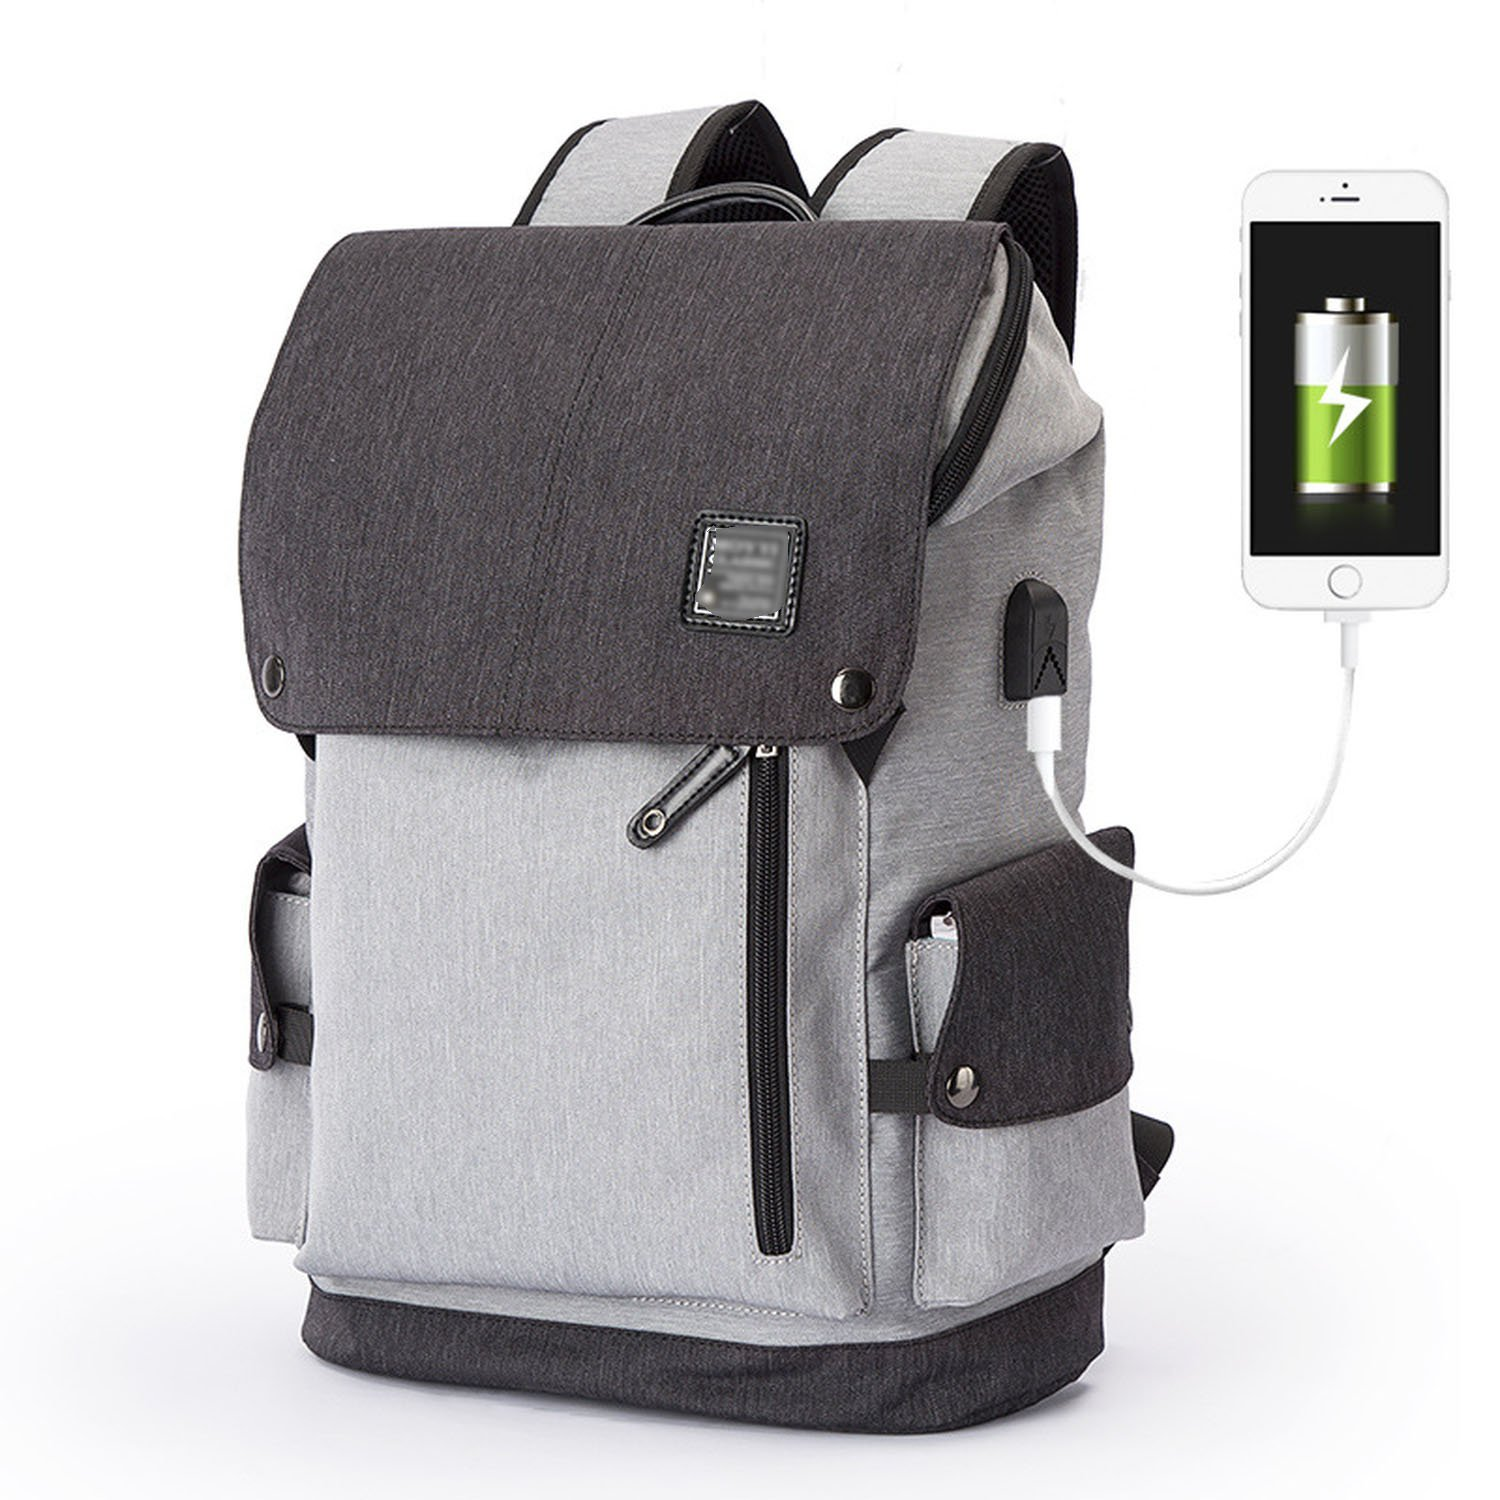 Slim Business Laptop Backpack USB Anti Thief/Tear Water Resistant Travel Computer Backpack 15.6/17Inch,Gray black charging